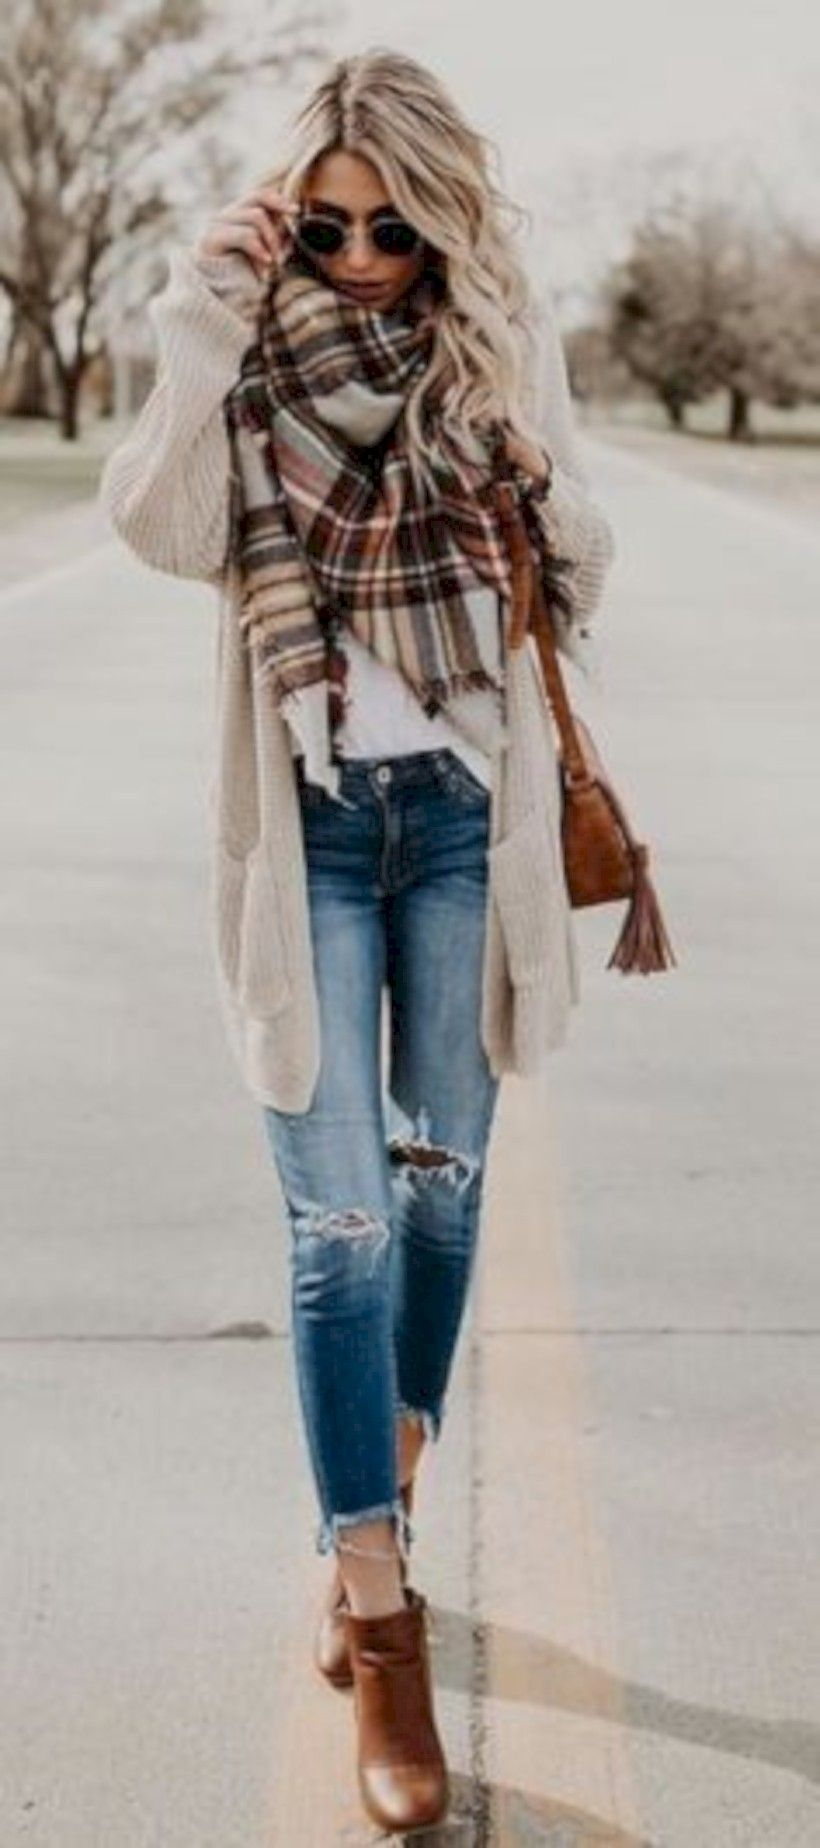 35 Winter Fashion Trends For Teens 2019 | Fashion ...